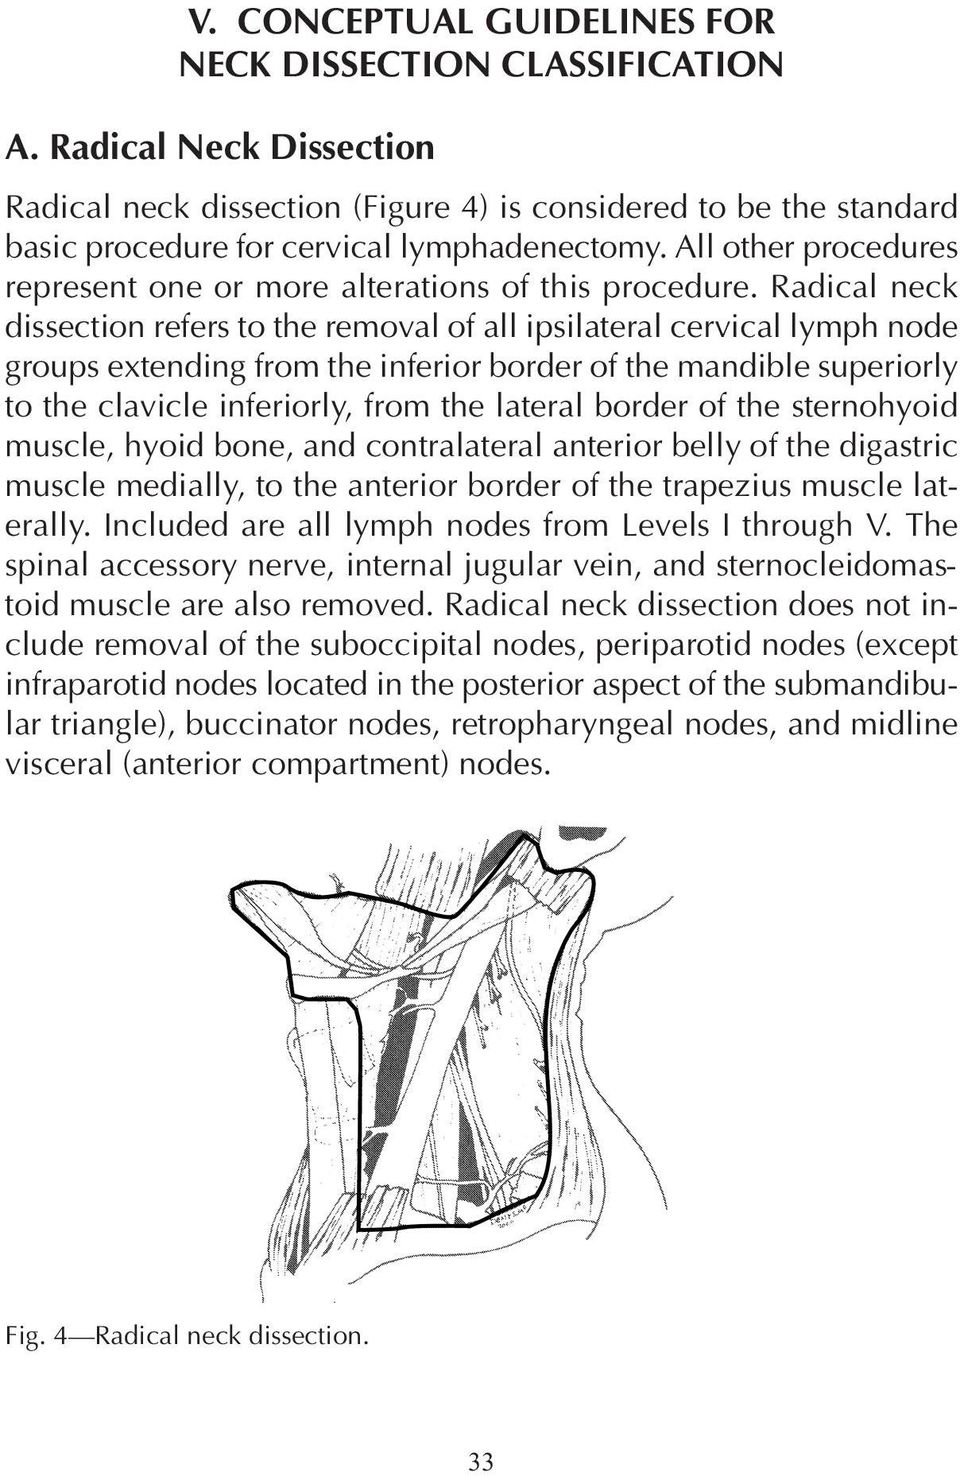 Radical neck dissection refers to the removal of all ipsilateral cervical lymph node groups extending from the inferior border of the mandible superiorly to the clavicle inferiorly, from the lateral